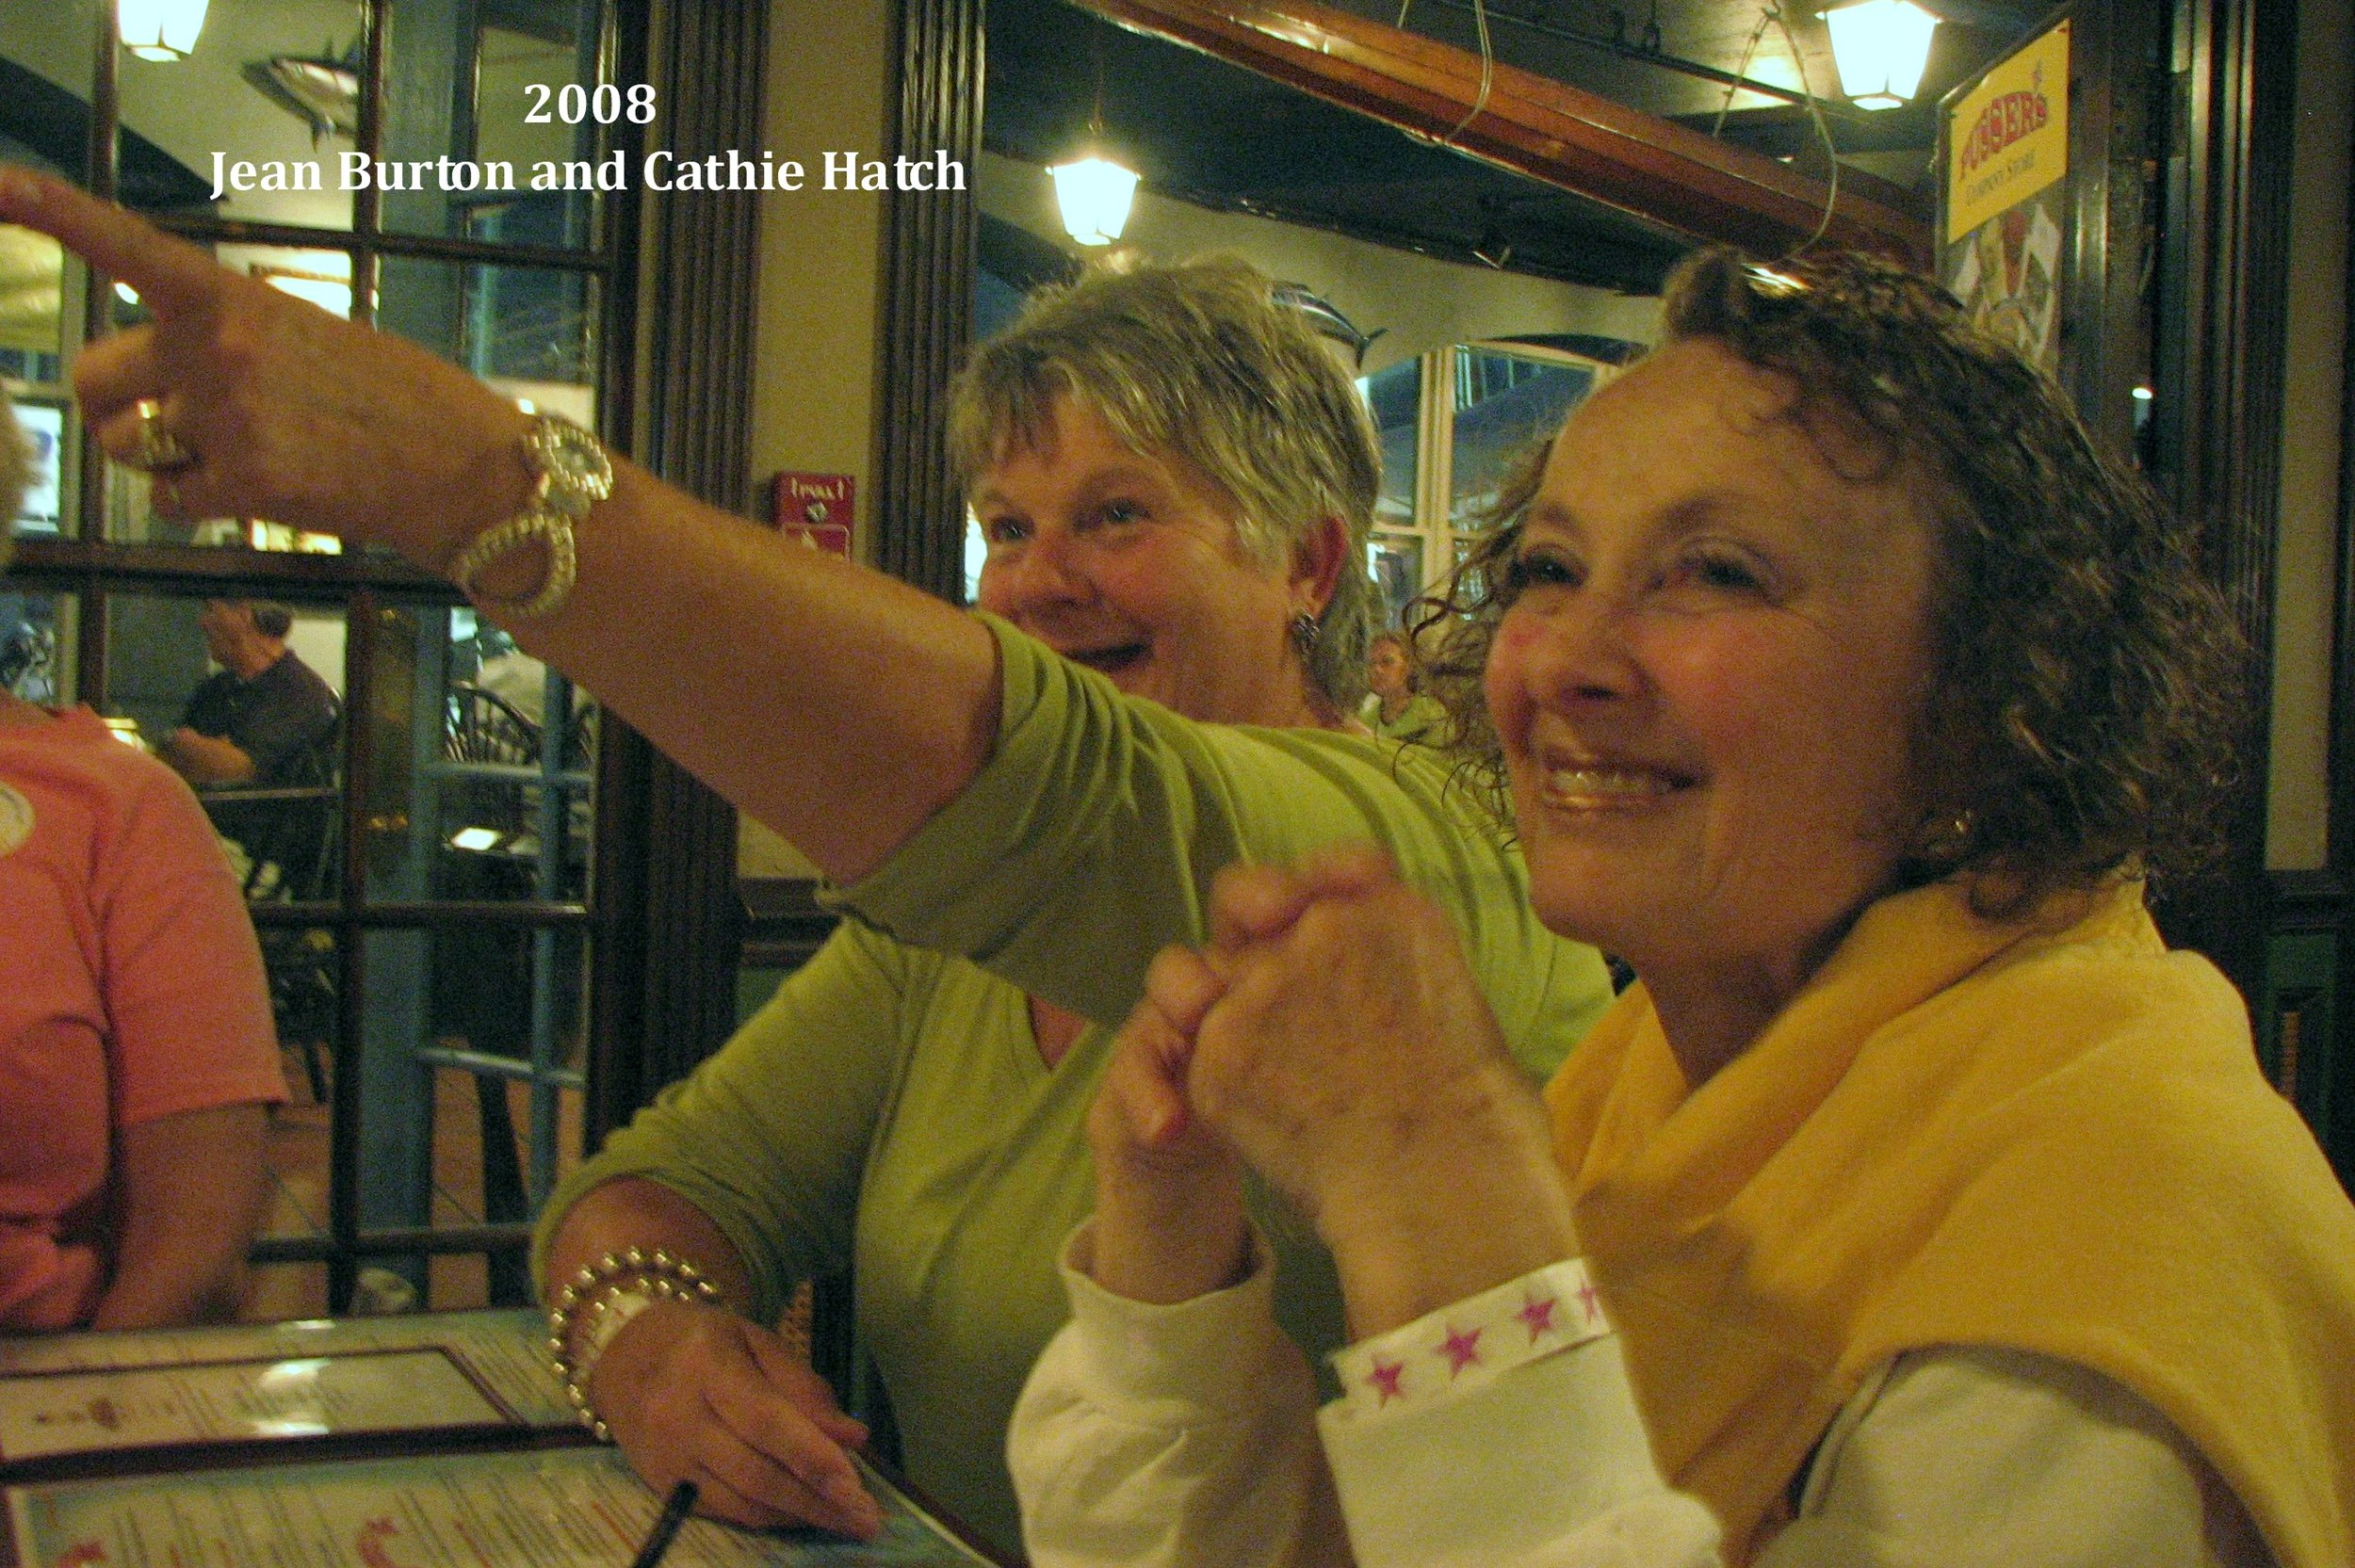 2008 Jean Burton and Cathie Hatch 2008.jpg